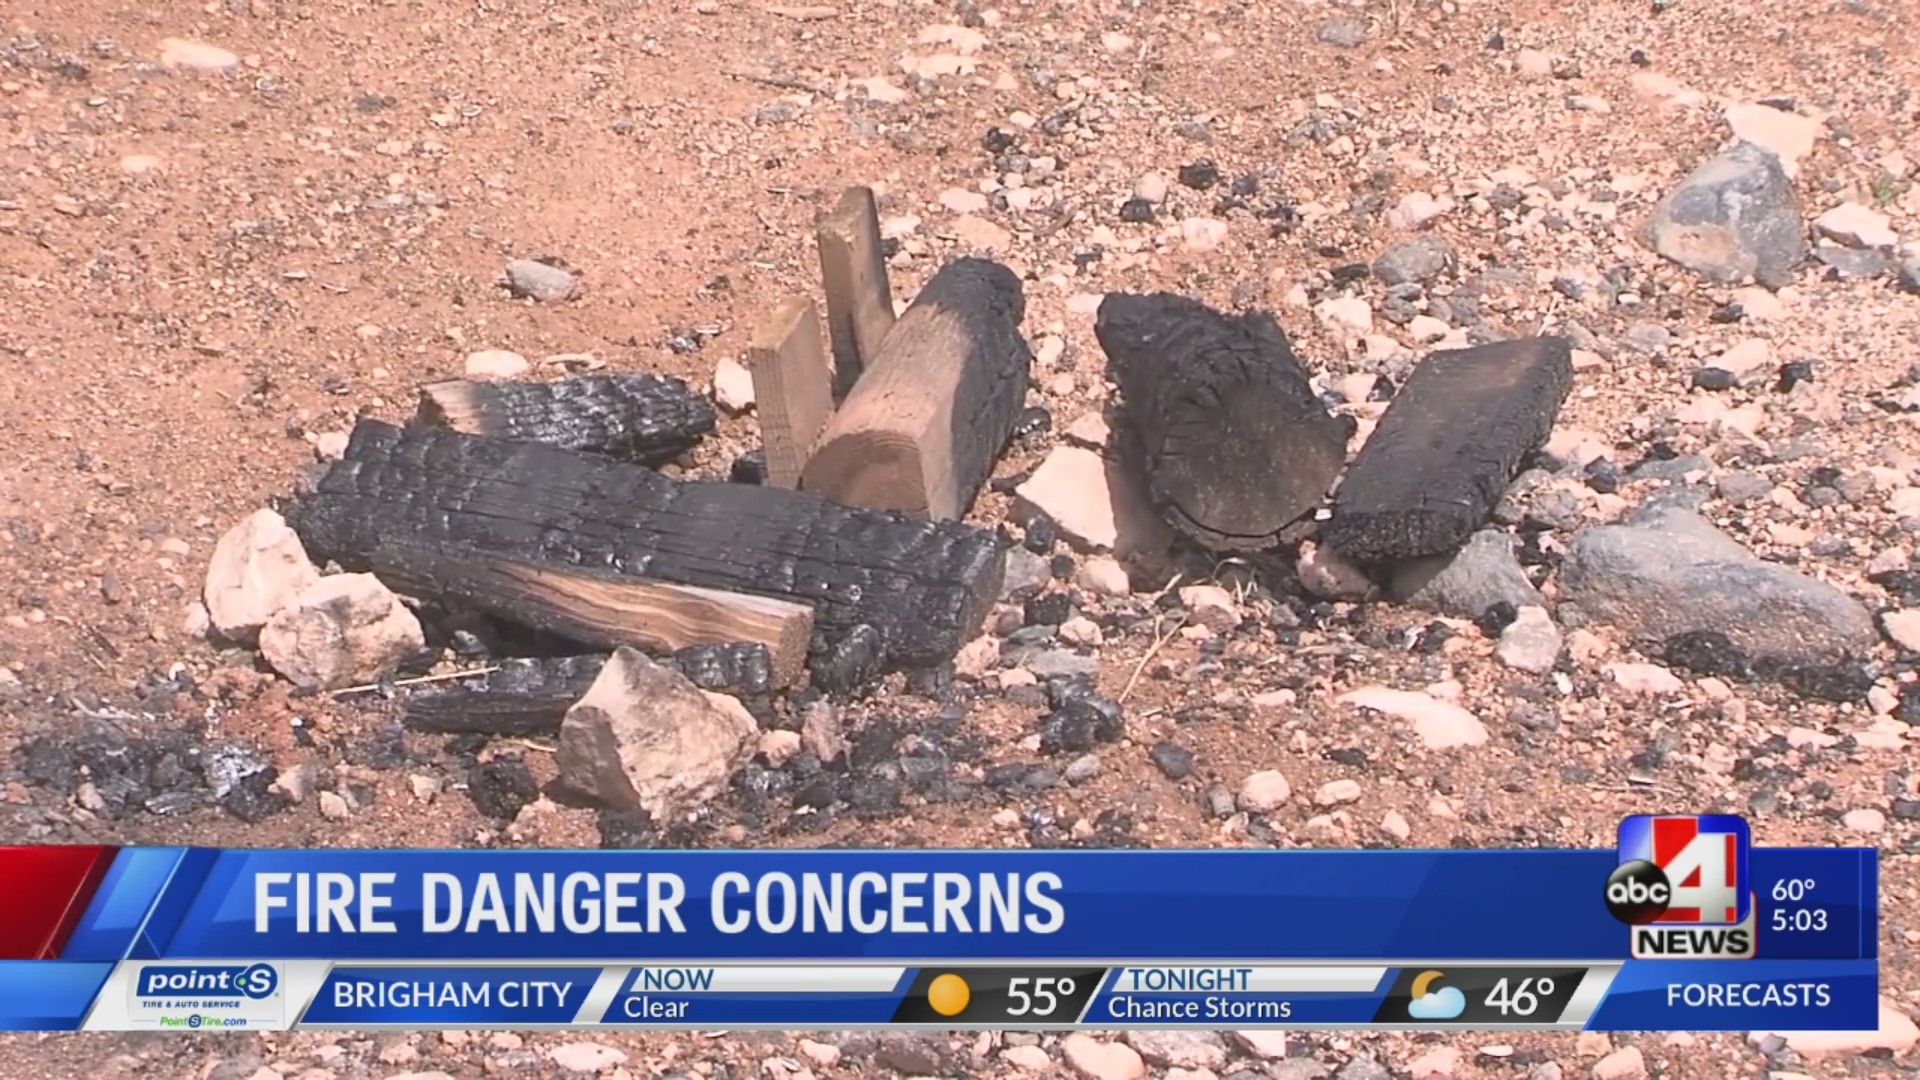 St. George fire officials say this year will likely be the worst fire season in over a decade